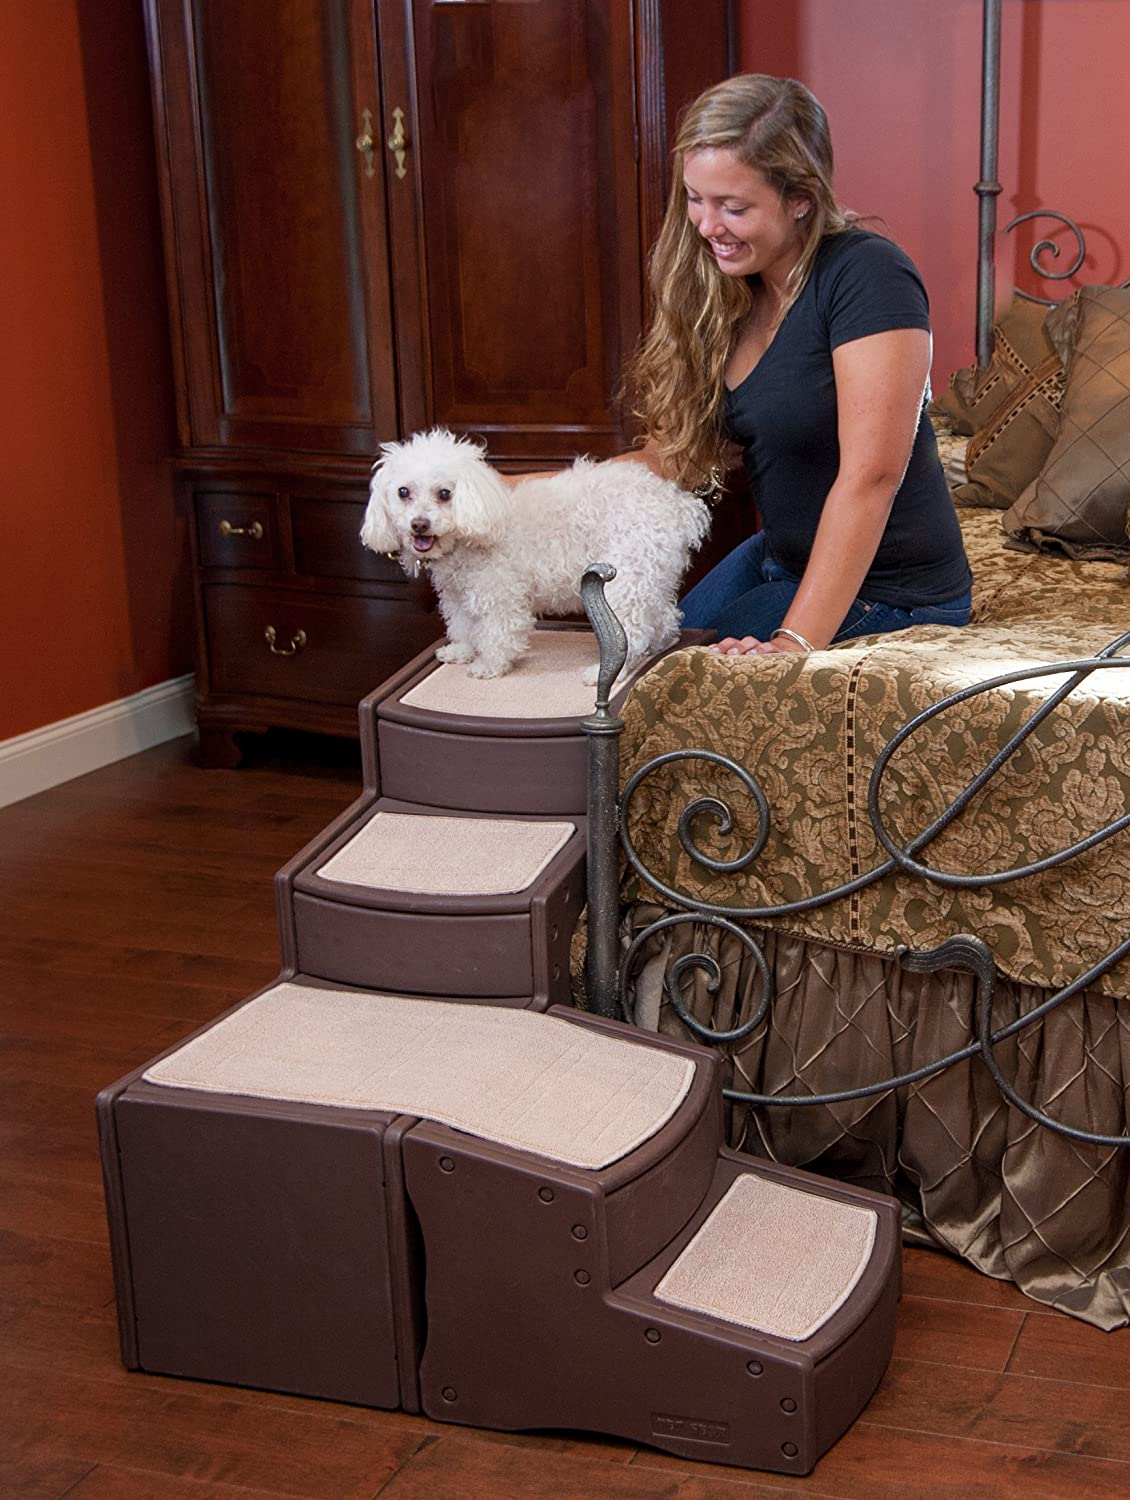 Amazon.com  Pet Gear Easy Step Wrap Around 4-Step Bed Stair for Pets Up to 75-Pound Chocolate  Pet Supplies  sc 1 st  Amazon.com & Amazon.com : Pet Gear Easy Step Wrap Around 4-Step Bed Stair for ... islam-shia.org